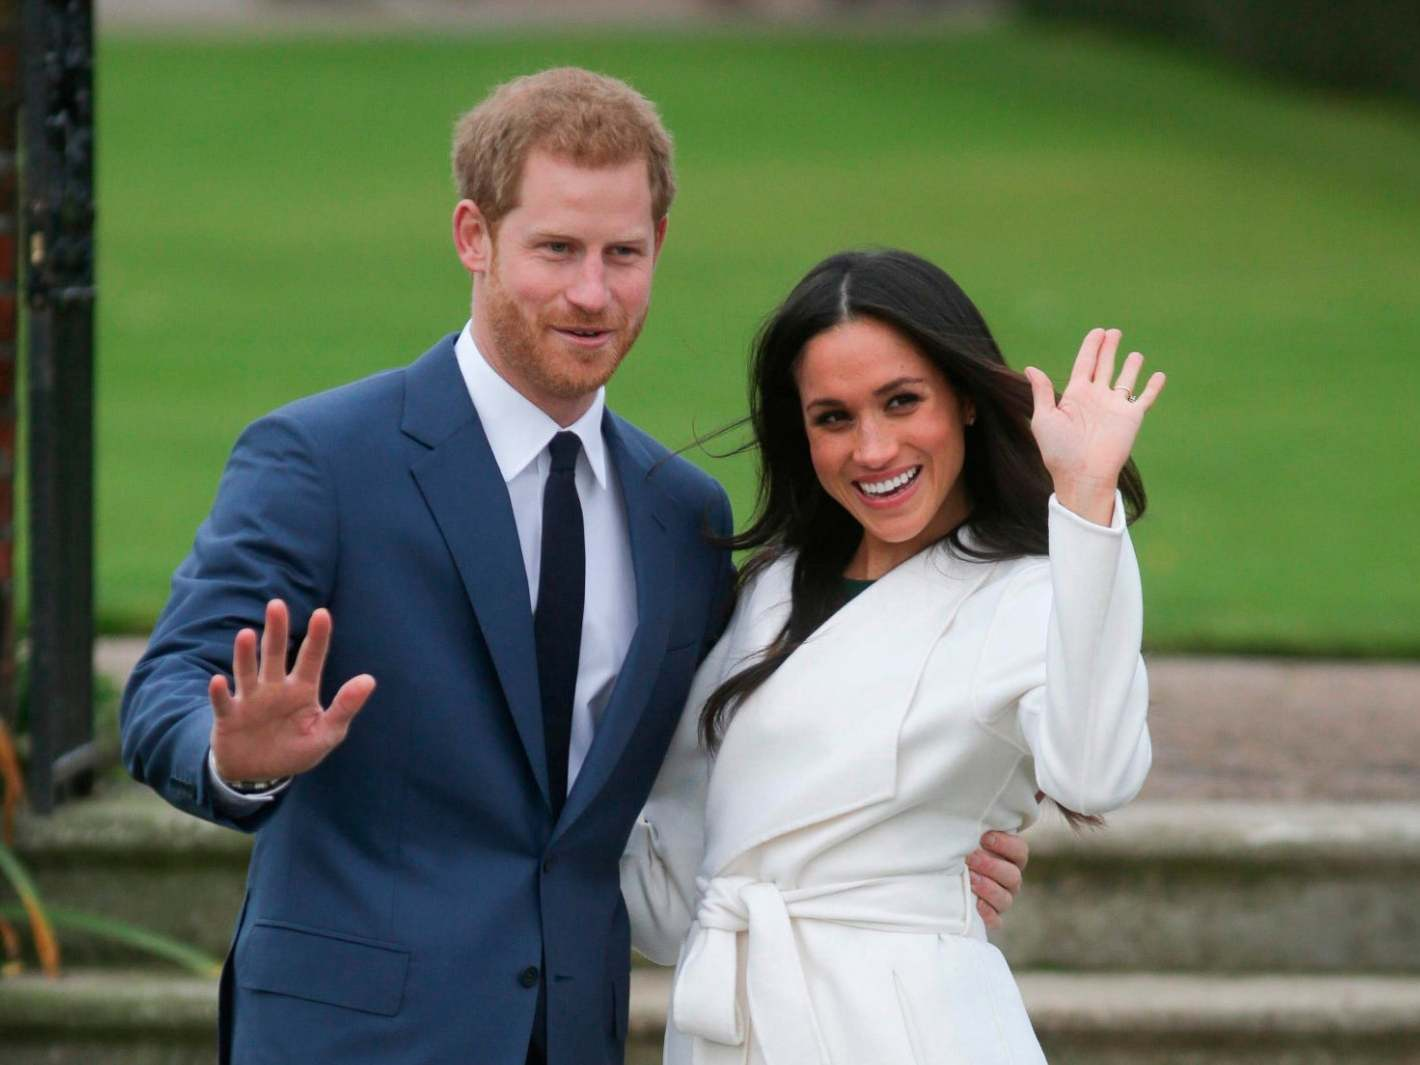 meghan markle and prince harry news live latest royal family updates as couple prepare to step back the union journal meghan markle and prince harry news